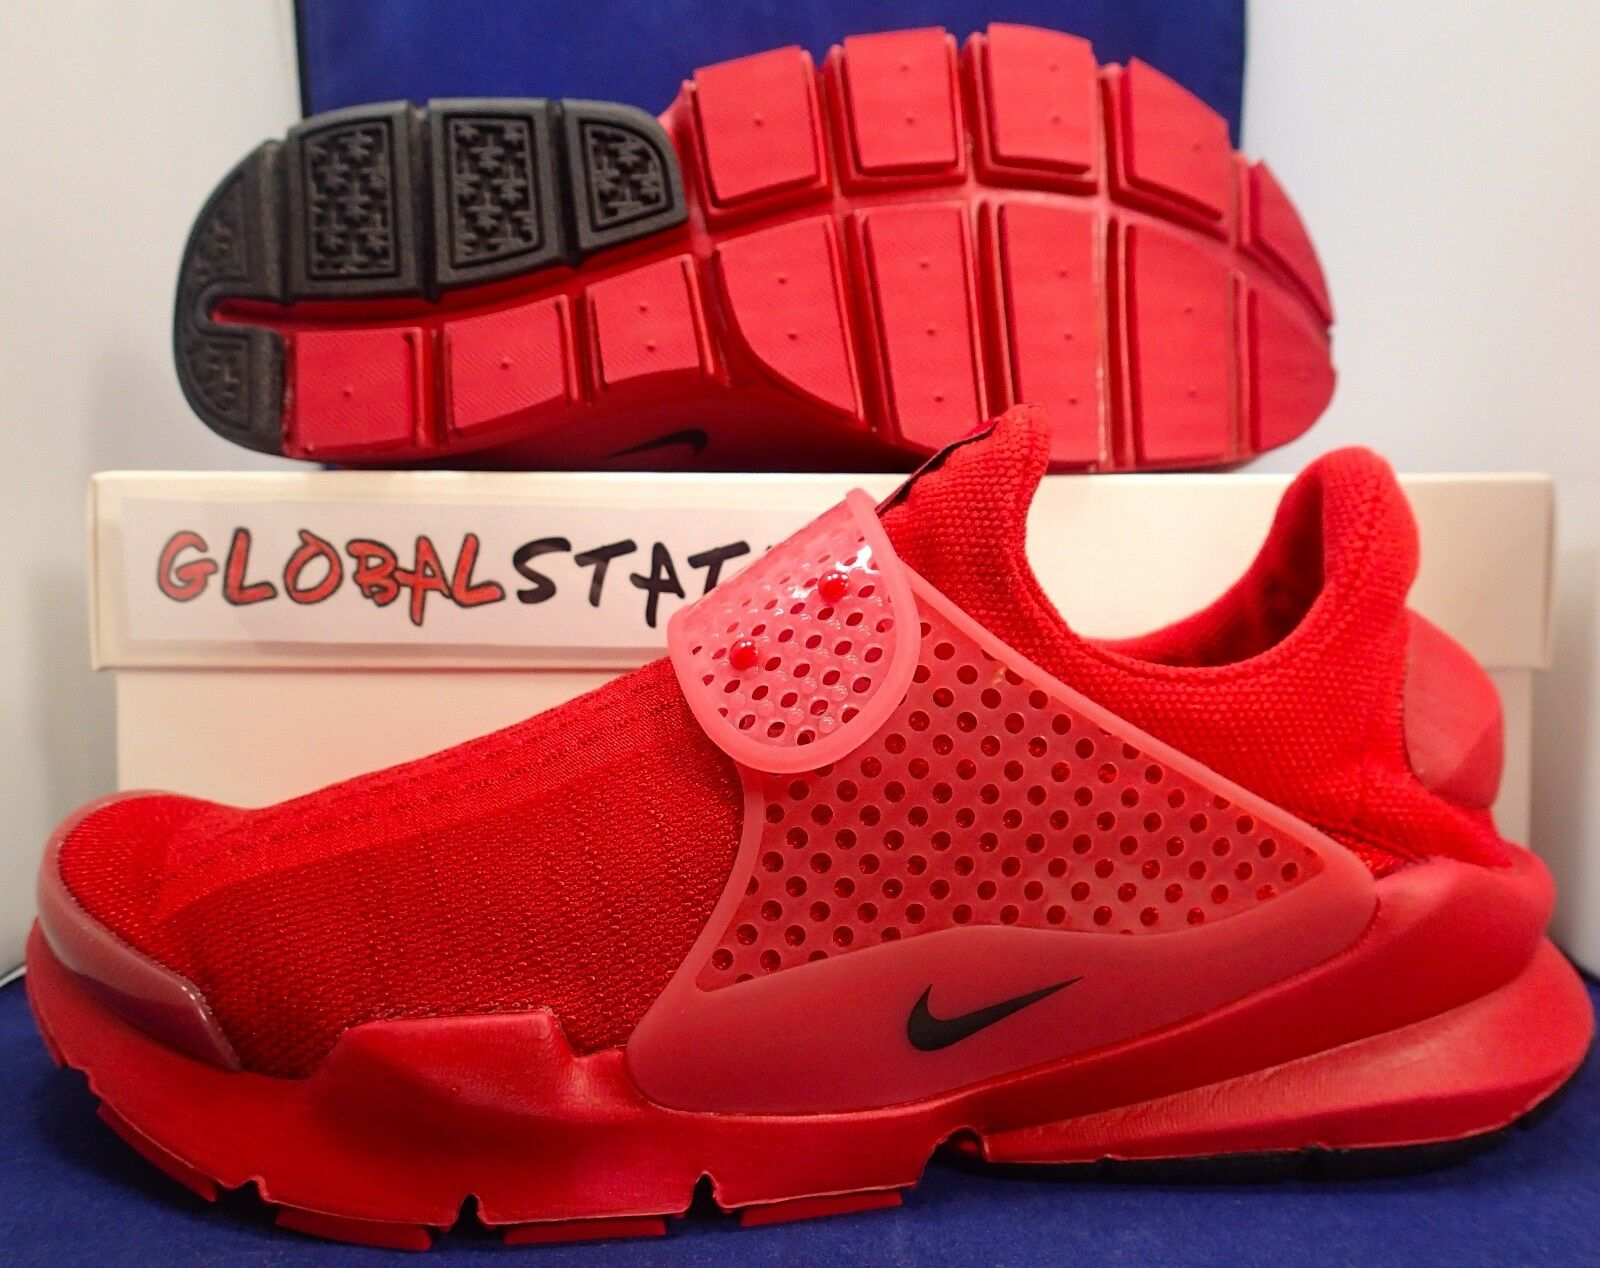 2015 NIKE SOCK DART SP INDEPENDENCE DAY VARSITY RED SHOES 686058 660 SIZE 9